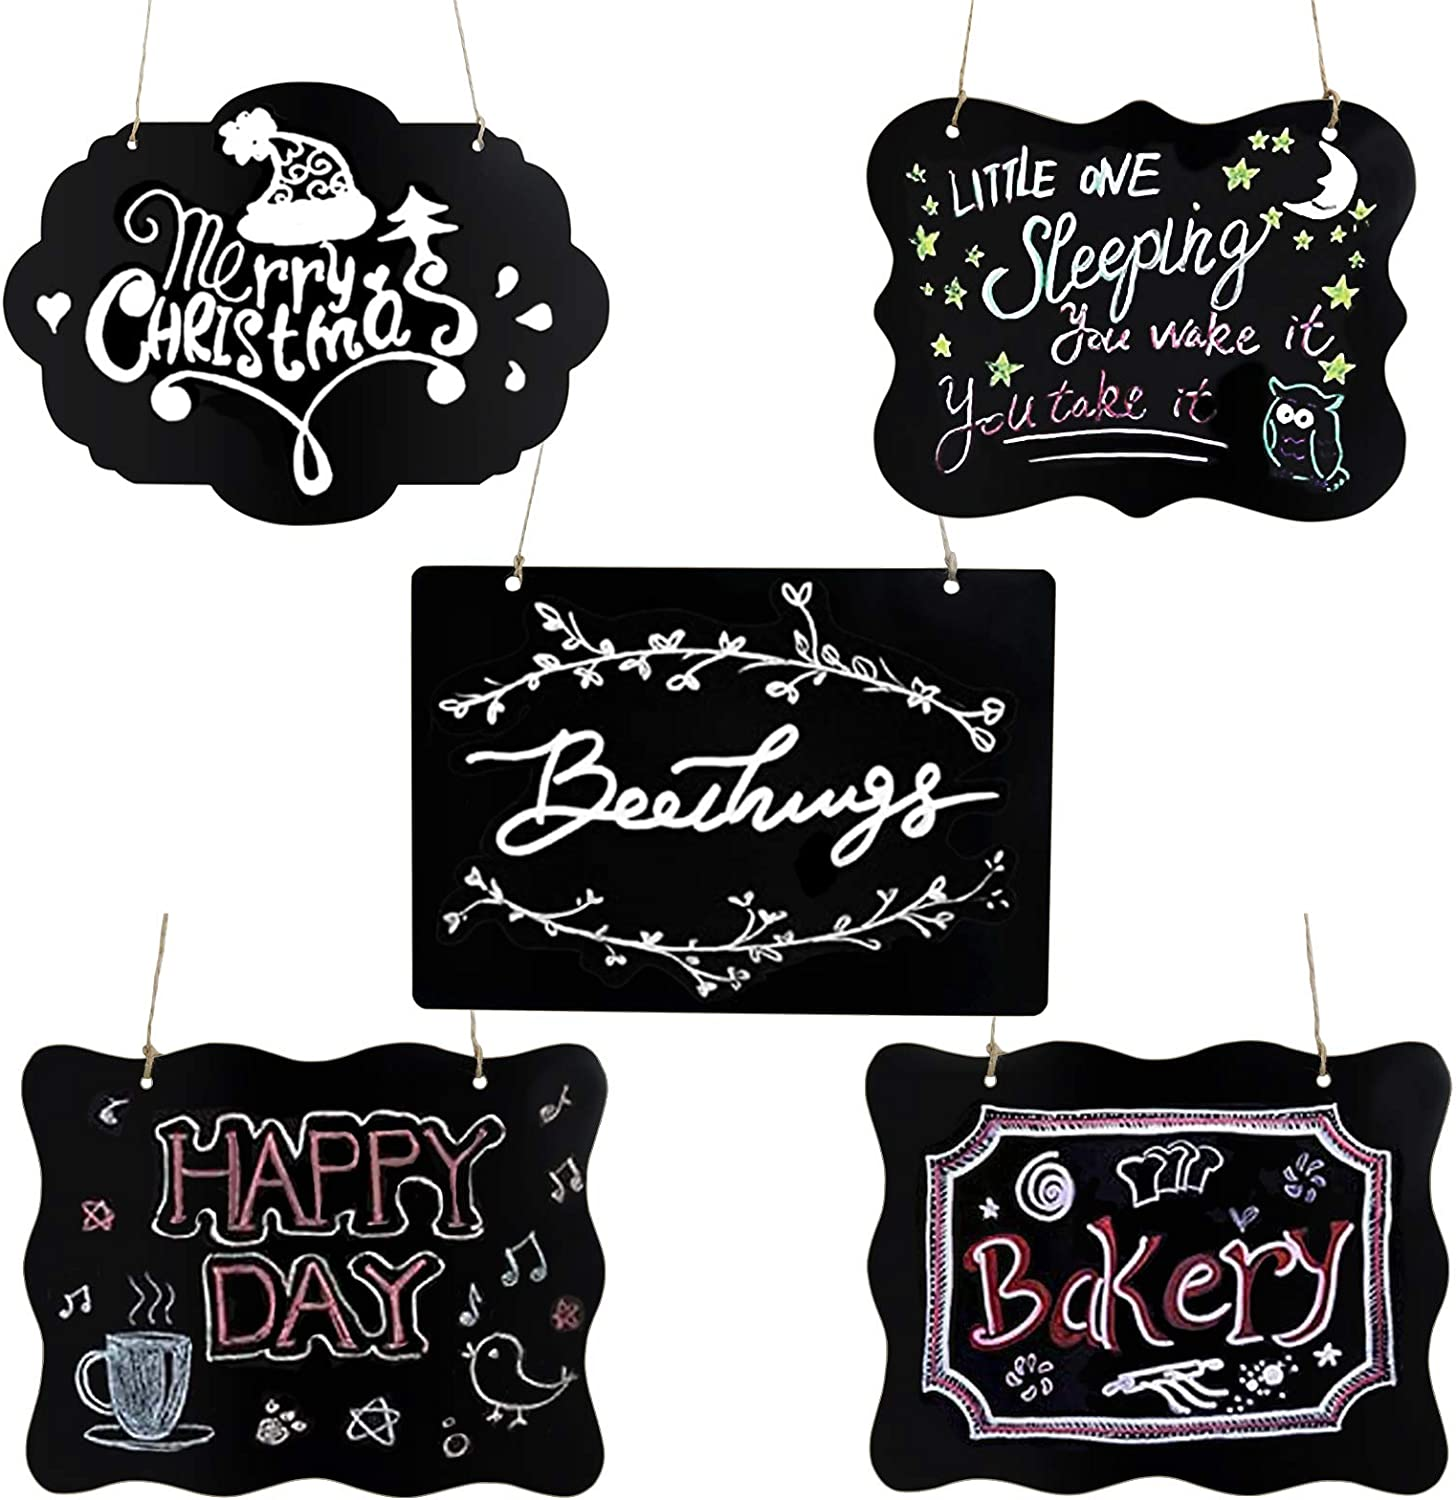 Suitable for Kids Doodling SmartUlife 5 Pack Hanging Chalkboard Sign Message Board with Hanging String Double-Sided Wooden Message Board